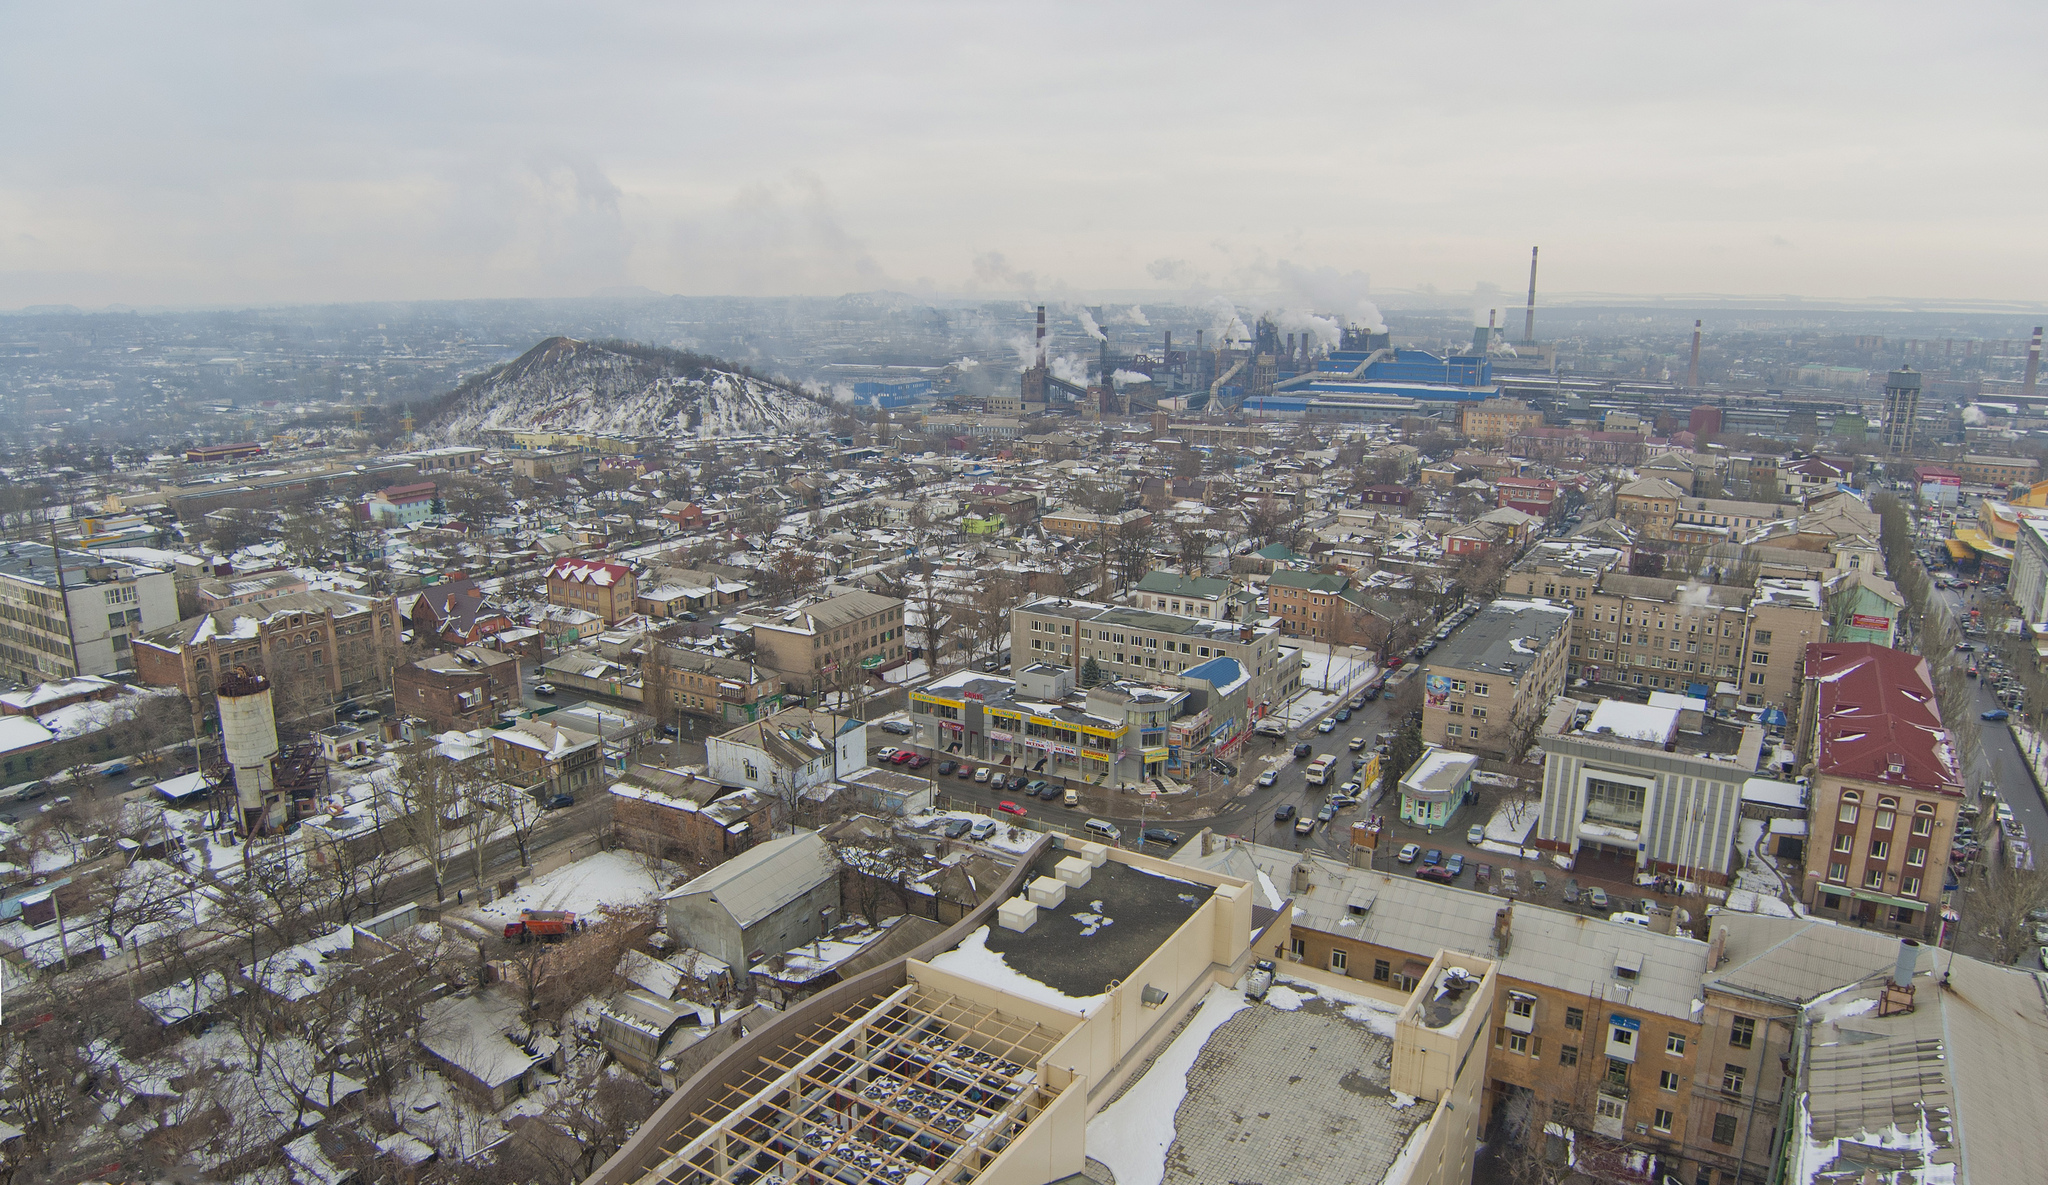 Industrial city, Donetsk